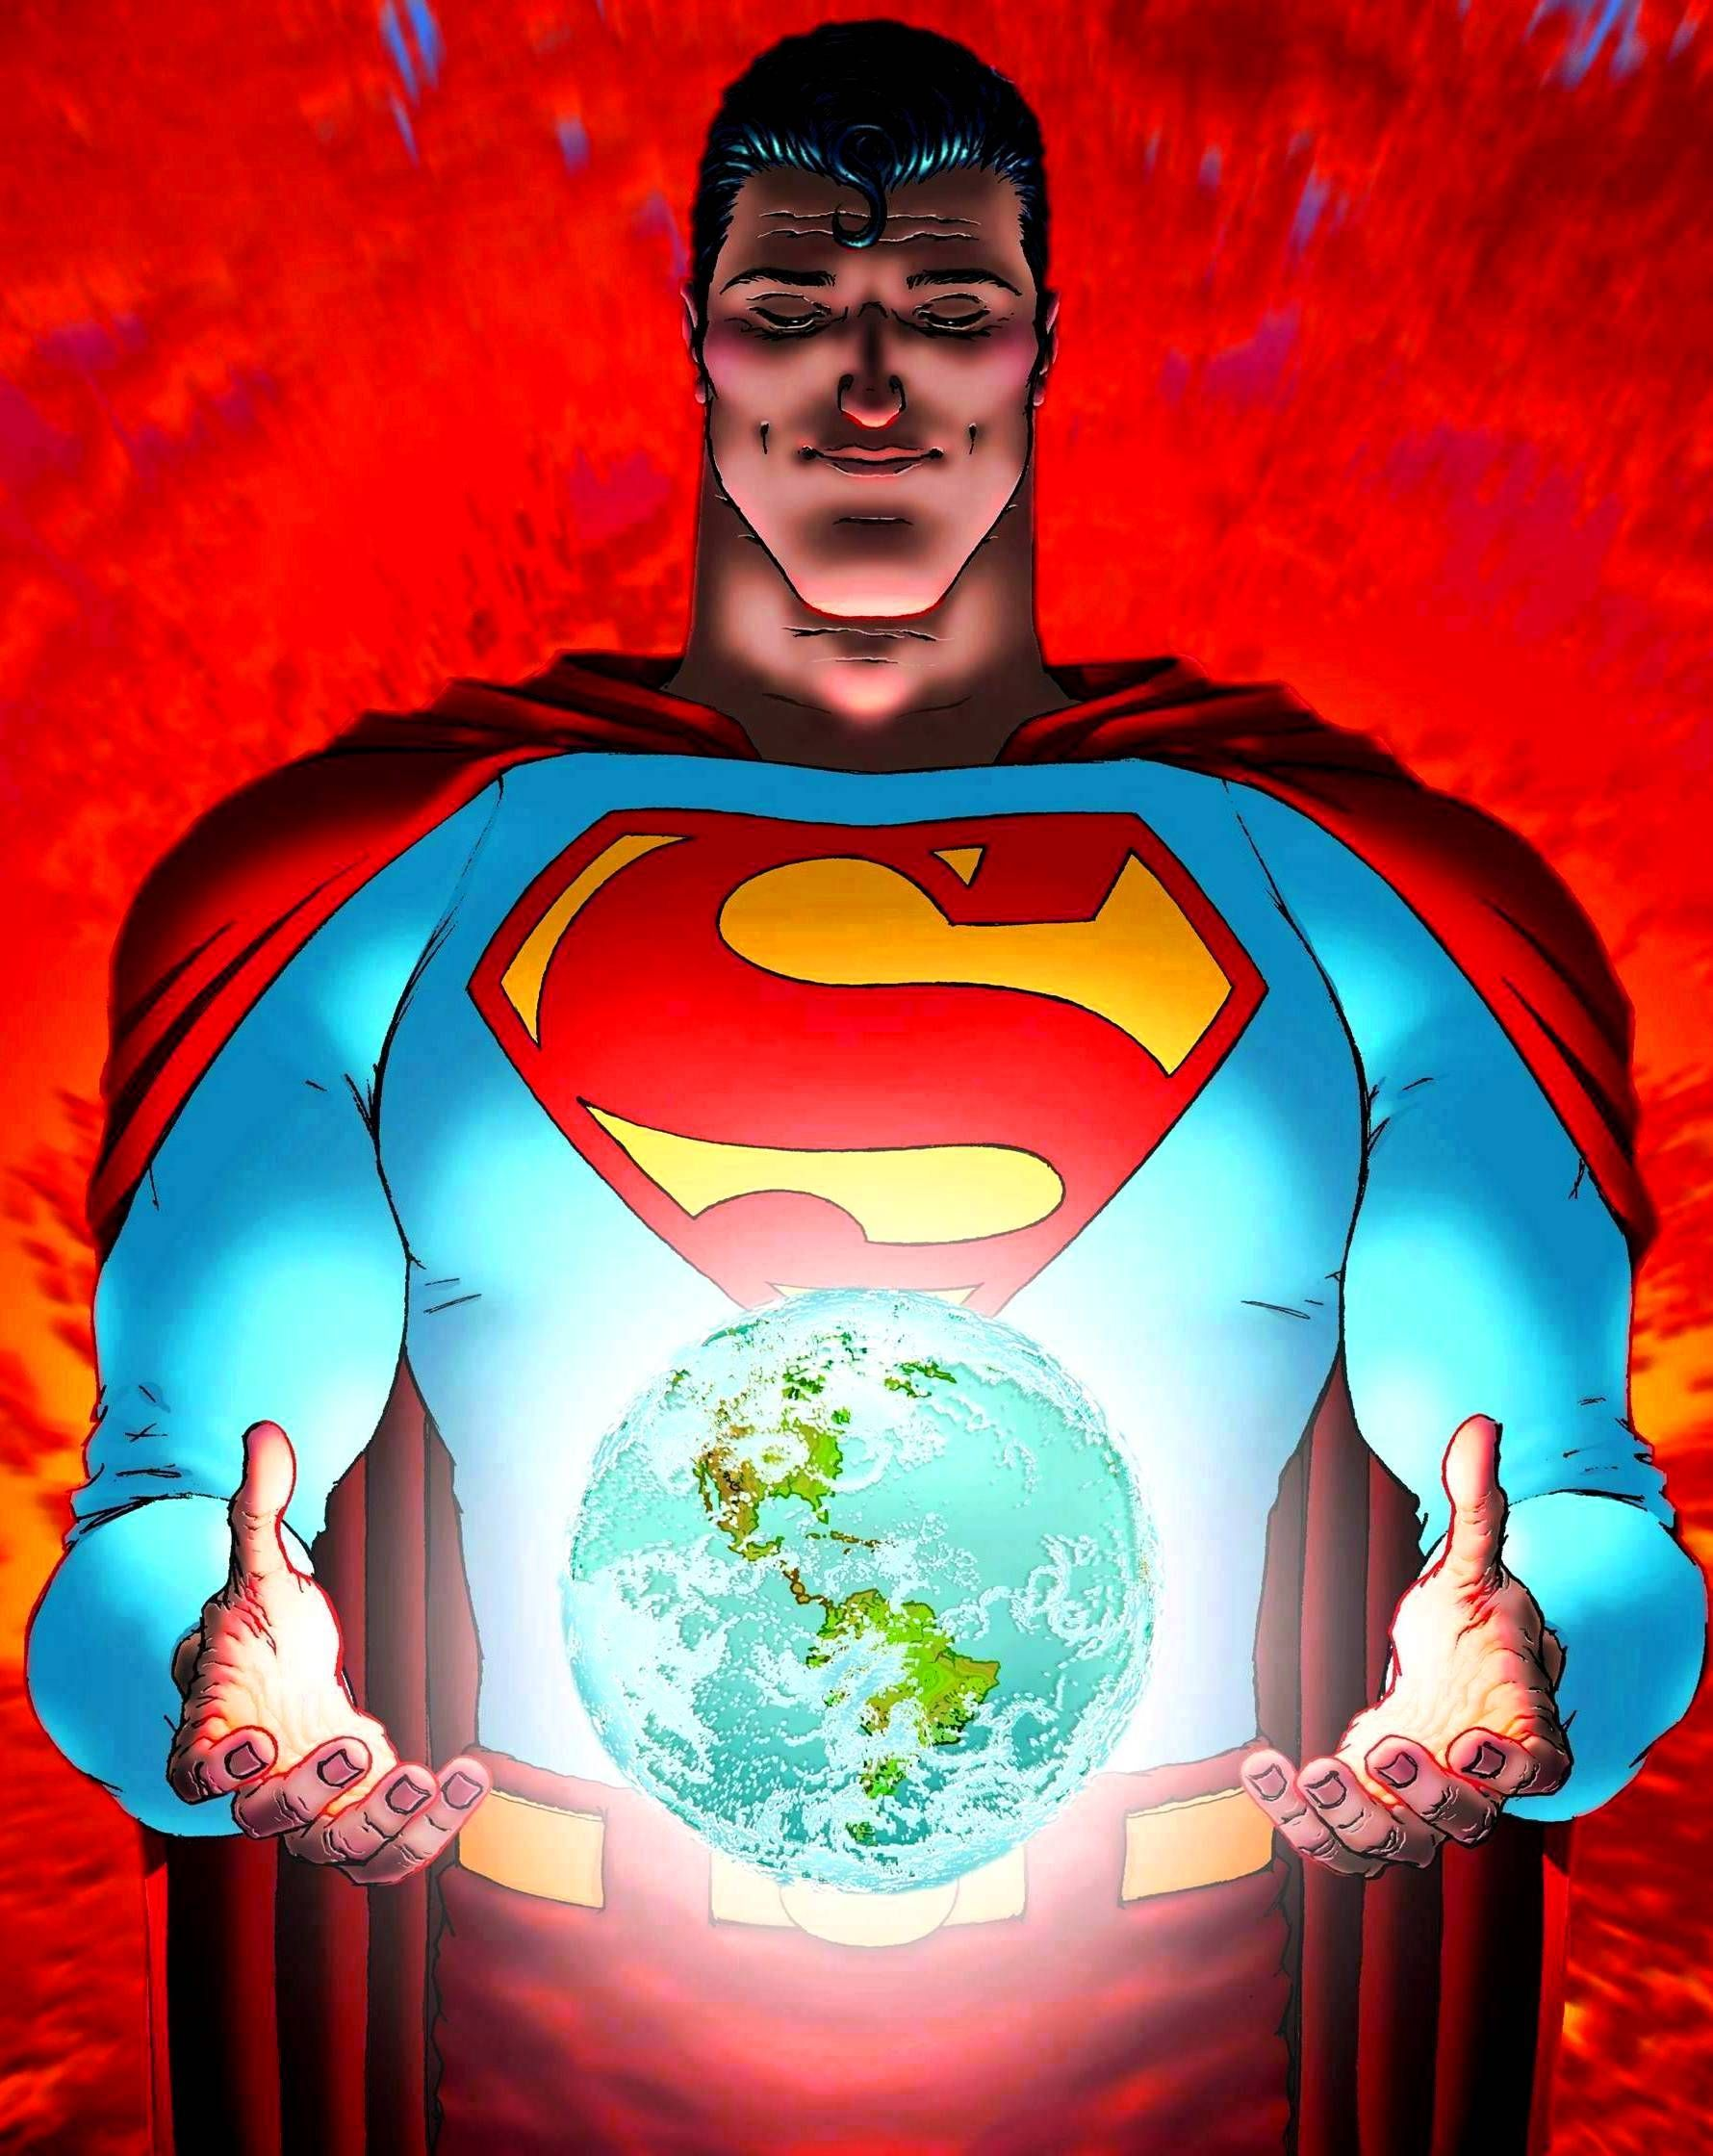 SUPERMAN 83 (All-Star Superman Comic)